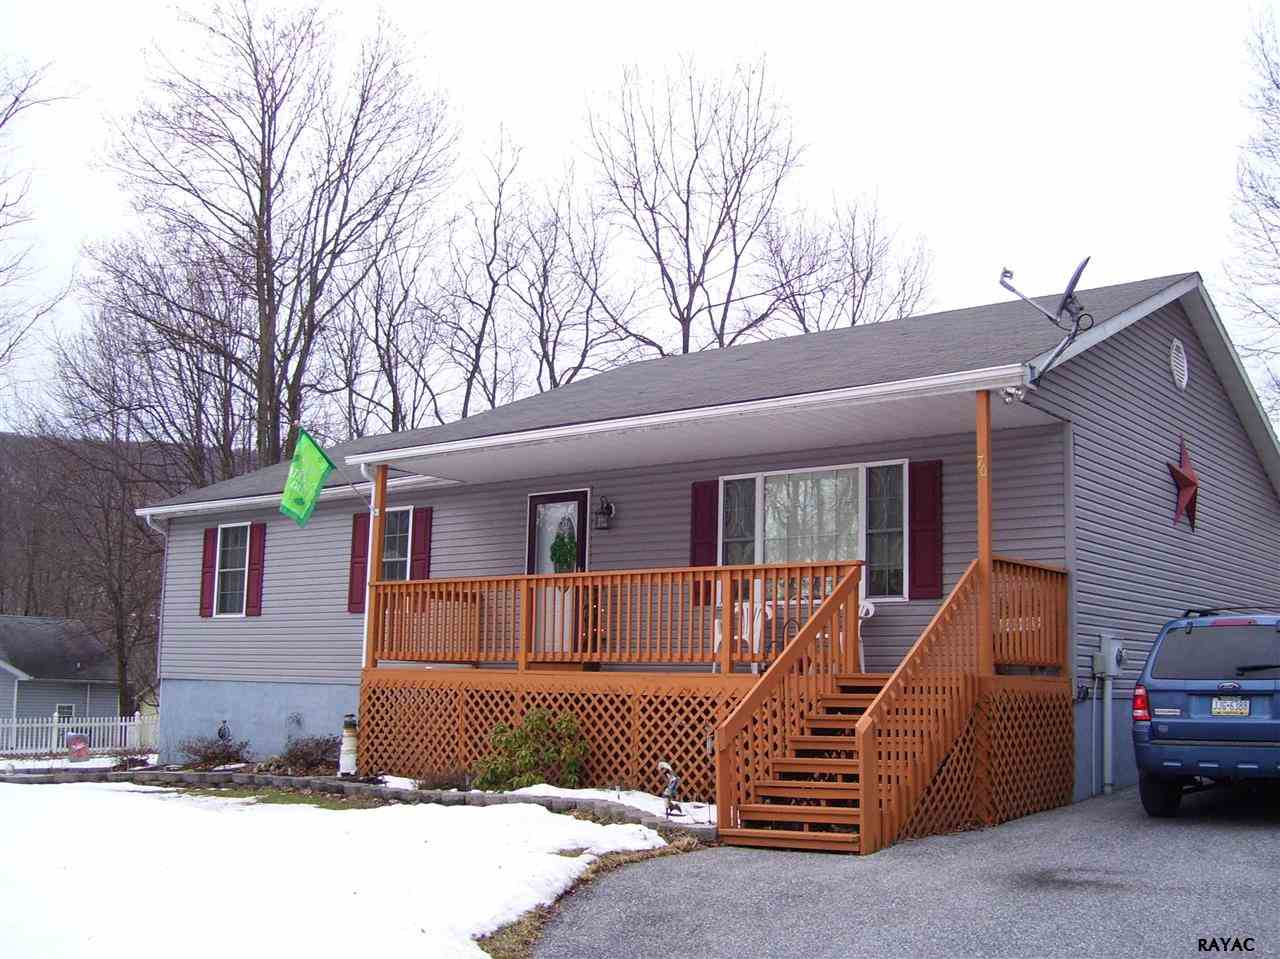 70 Cheryl Trl, Fairfield, PA 17320